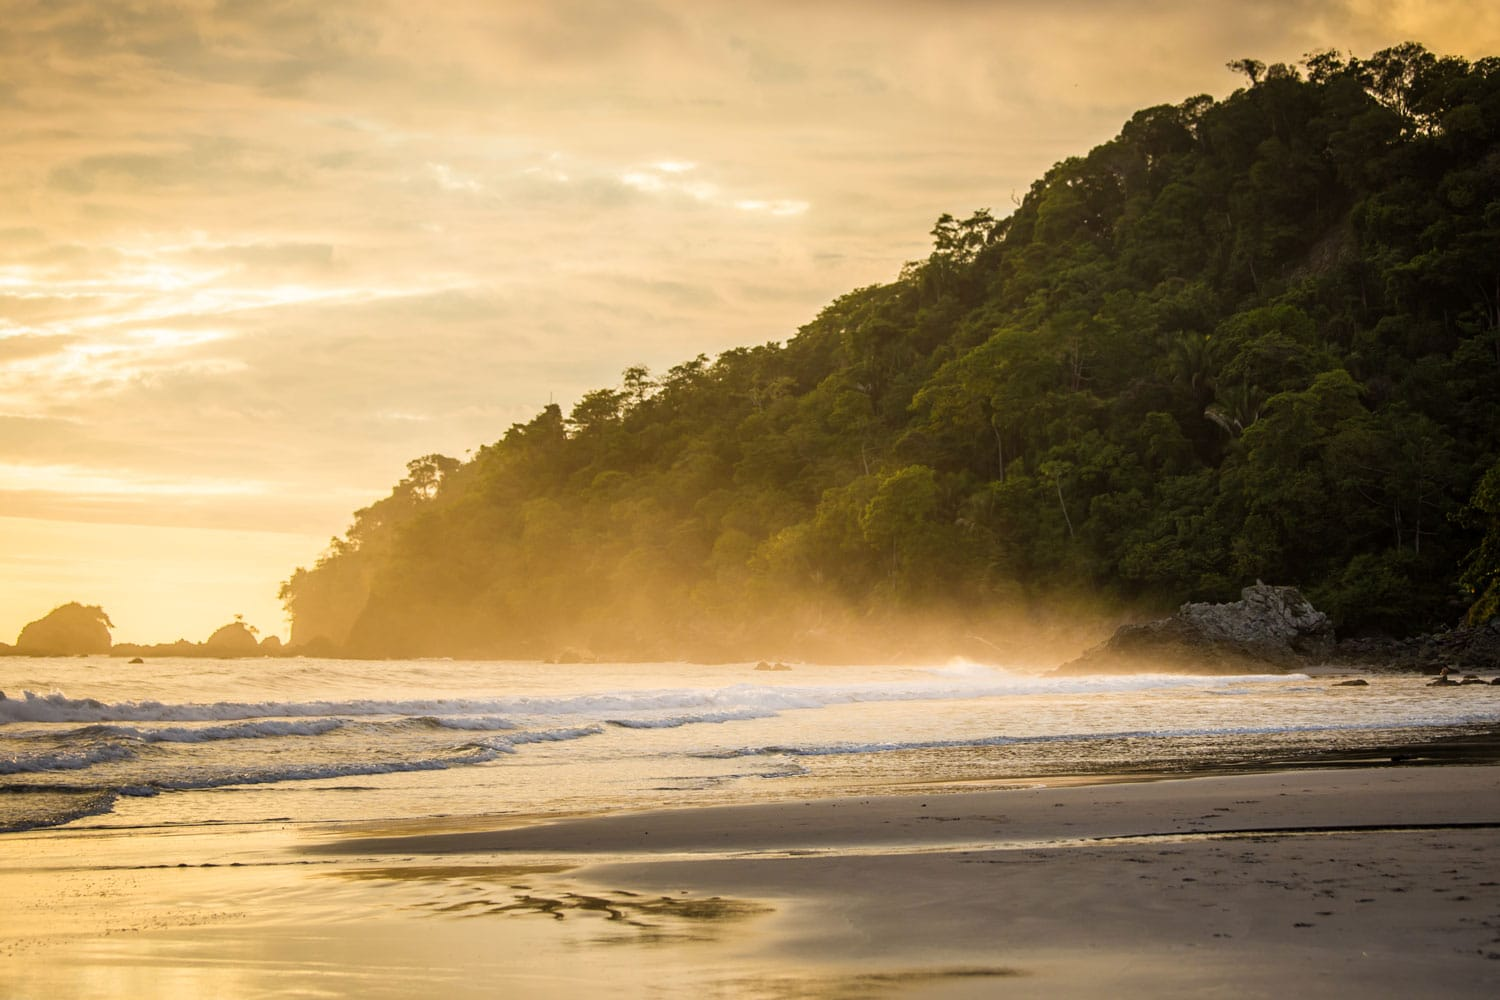 Sunset of the beach in Manuel Antonio, Costa Rica